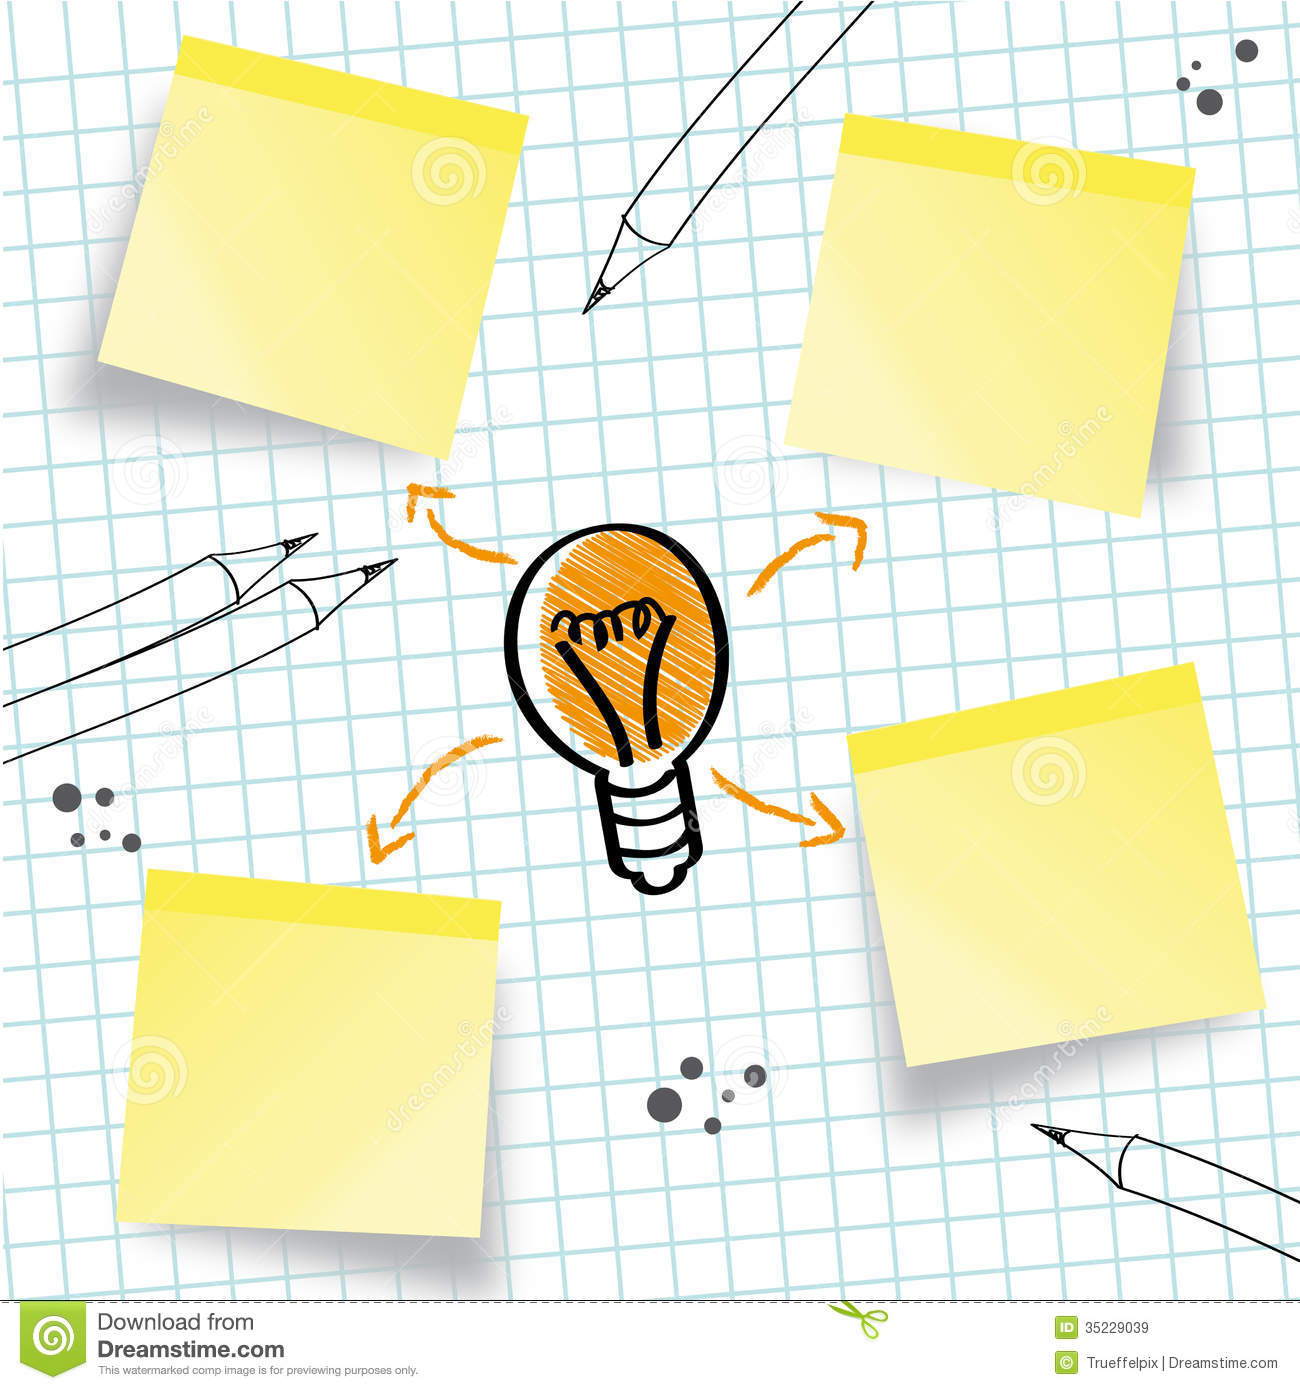 Idea, Concept, Idea Sketch Royalty Free Stock Images - Image: 35229039